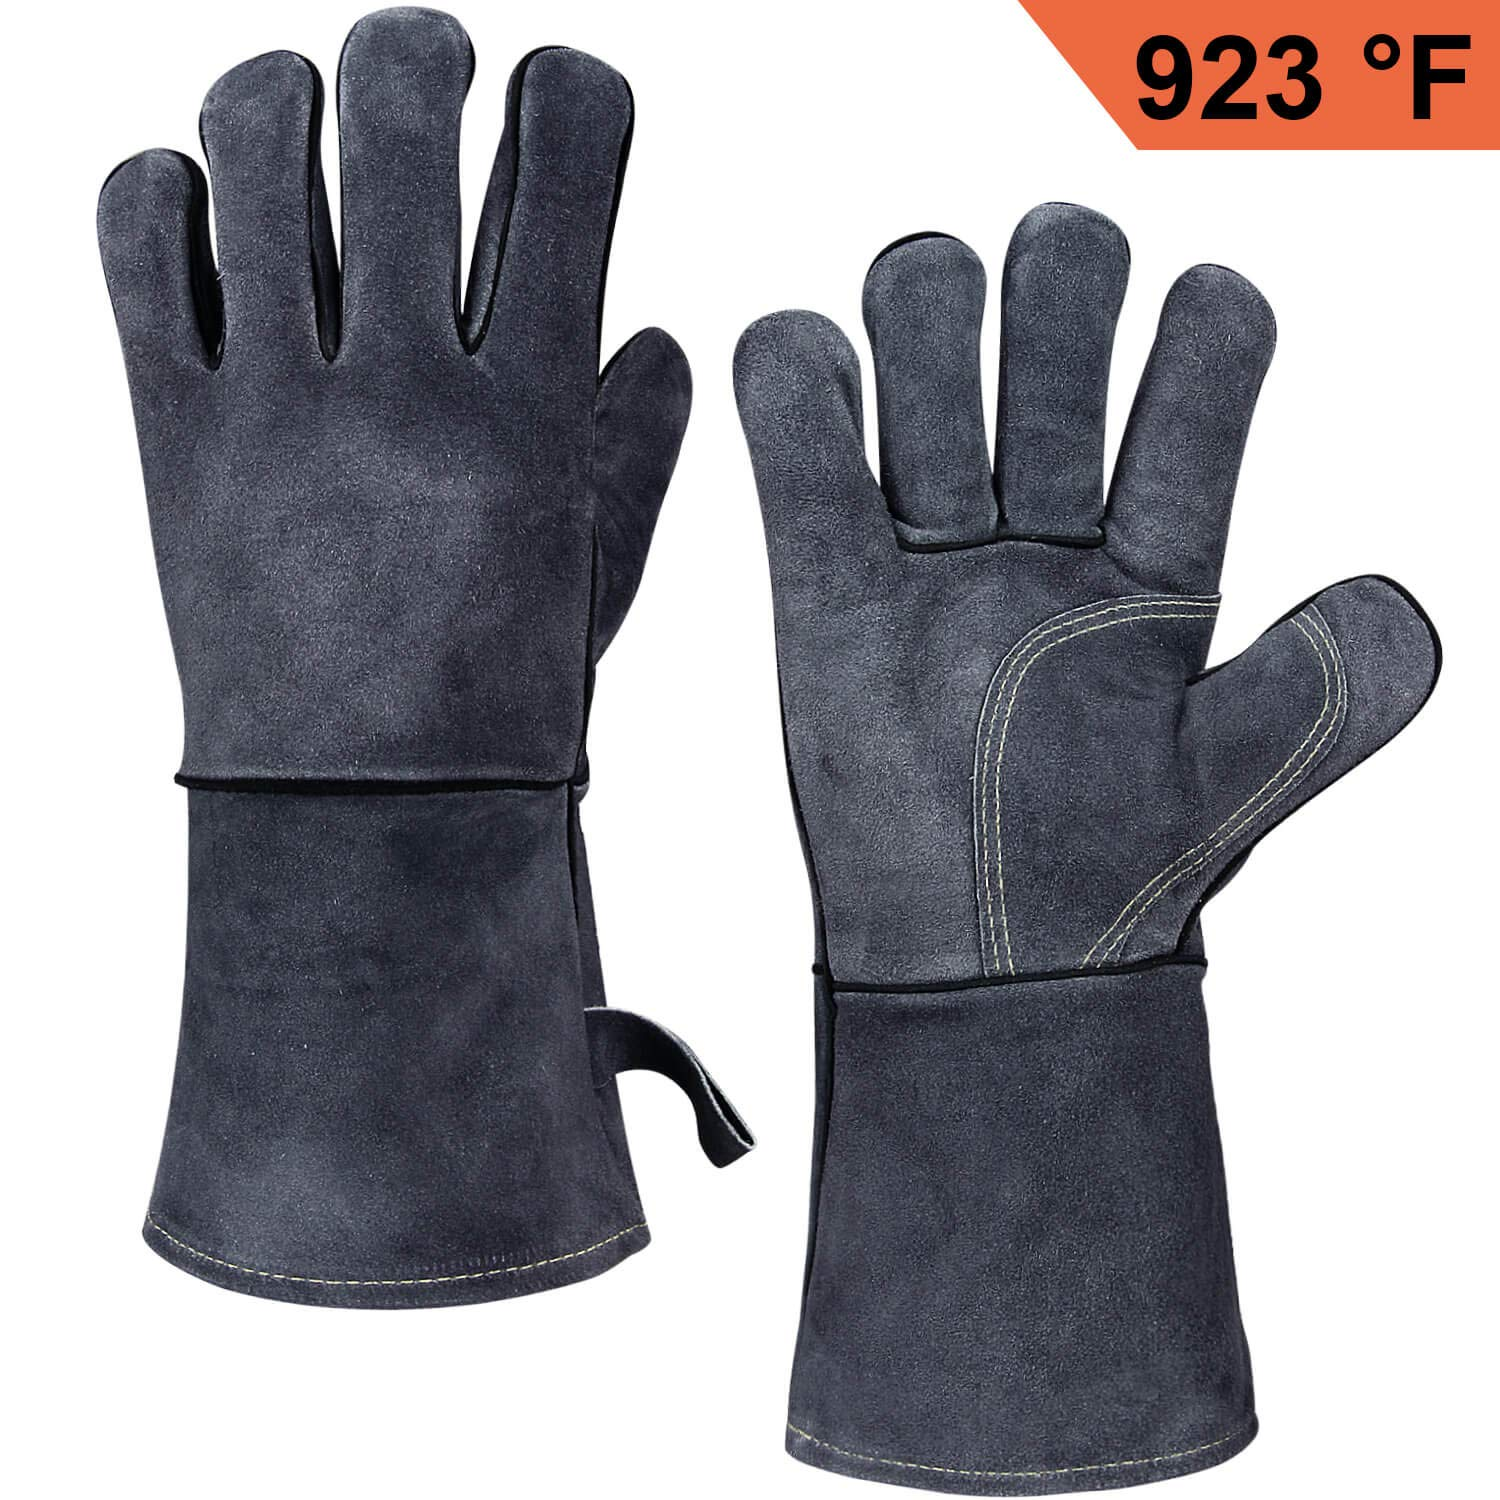 Leather Forge Welding Gloves, 932°F Heat Resistant Glove with Flame Retardant Long Sleeve for Men and Women (Gray, 14-inch)